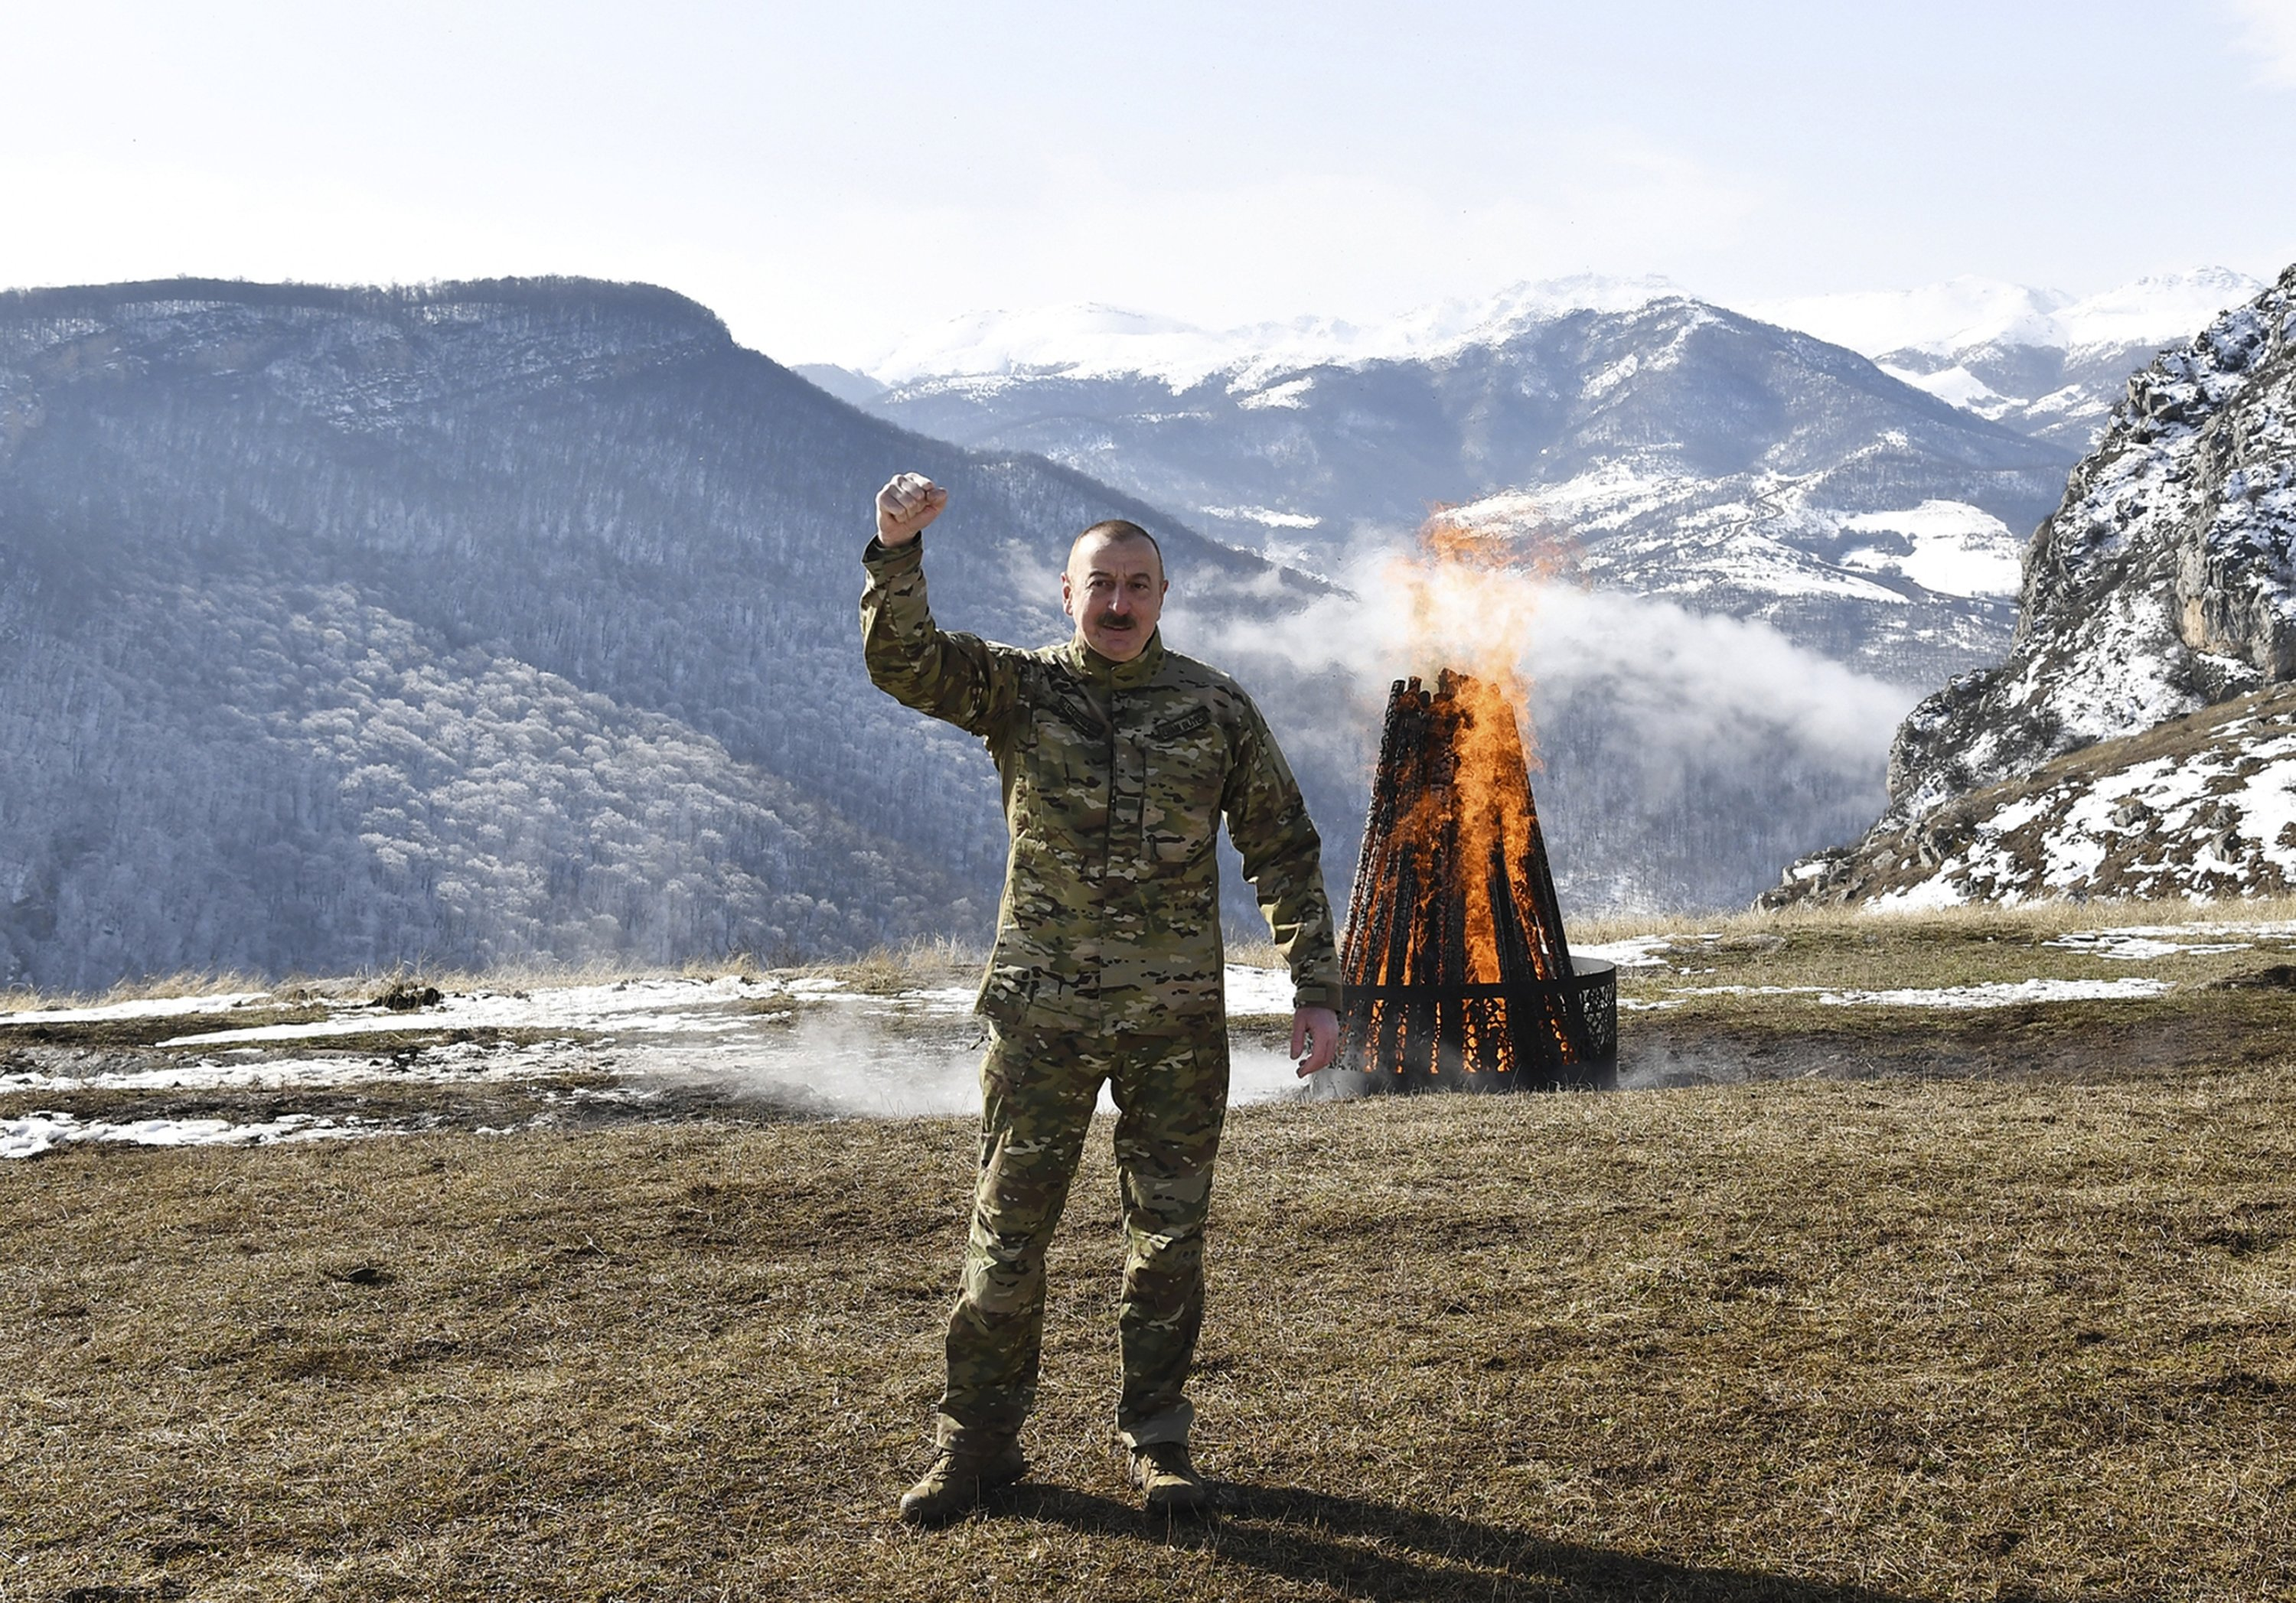 Azerbaijani President Ilham Aliyev gestures while celebrating Nevruz, a traditional holiday which celebrates the coming of Spring outside Shusha, Azerbaijan, March 20, 2021. (Photo by Getty Images)